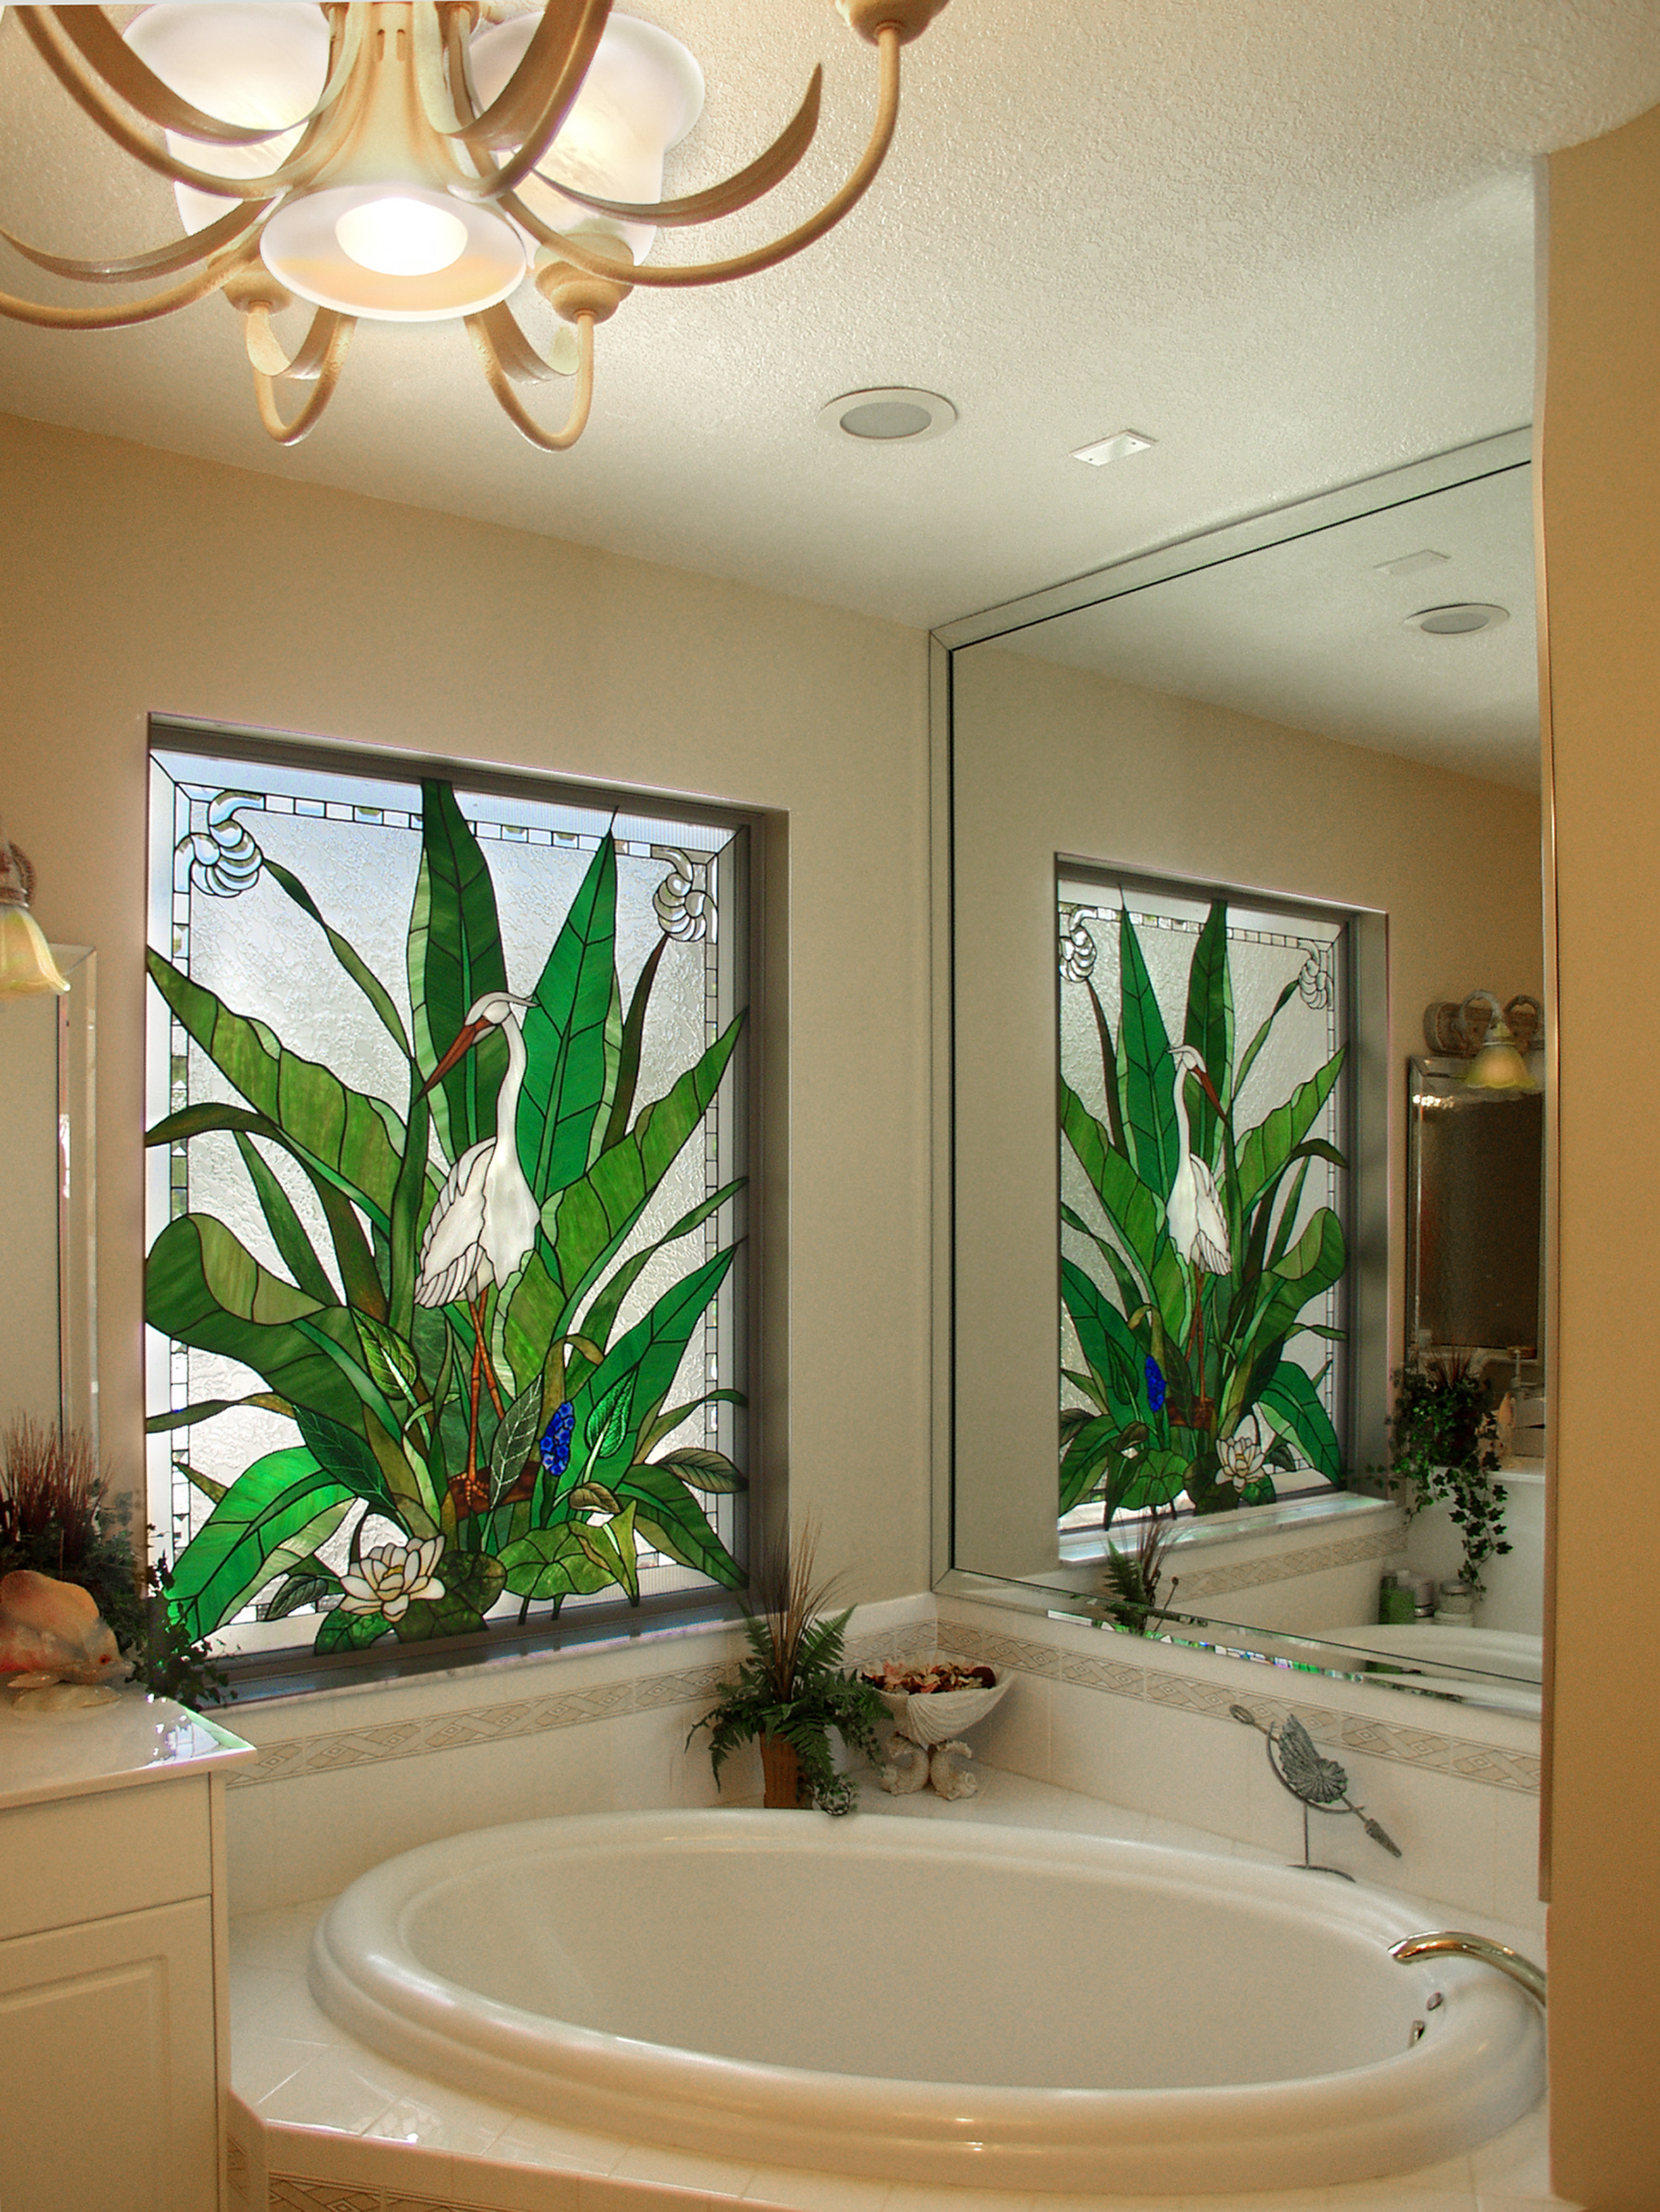 A unique bath window design by PRESTON STUDIOS